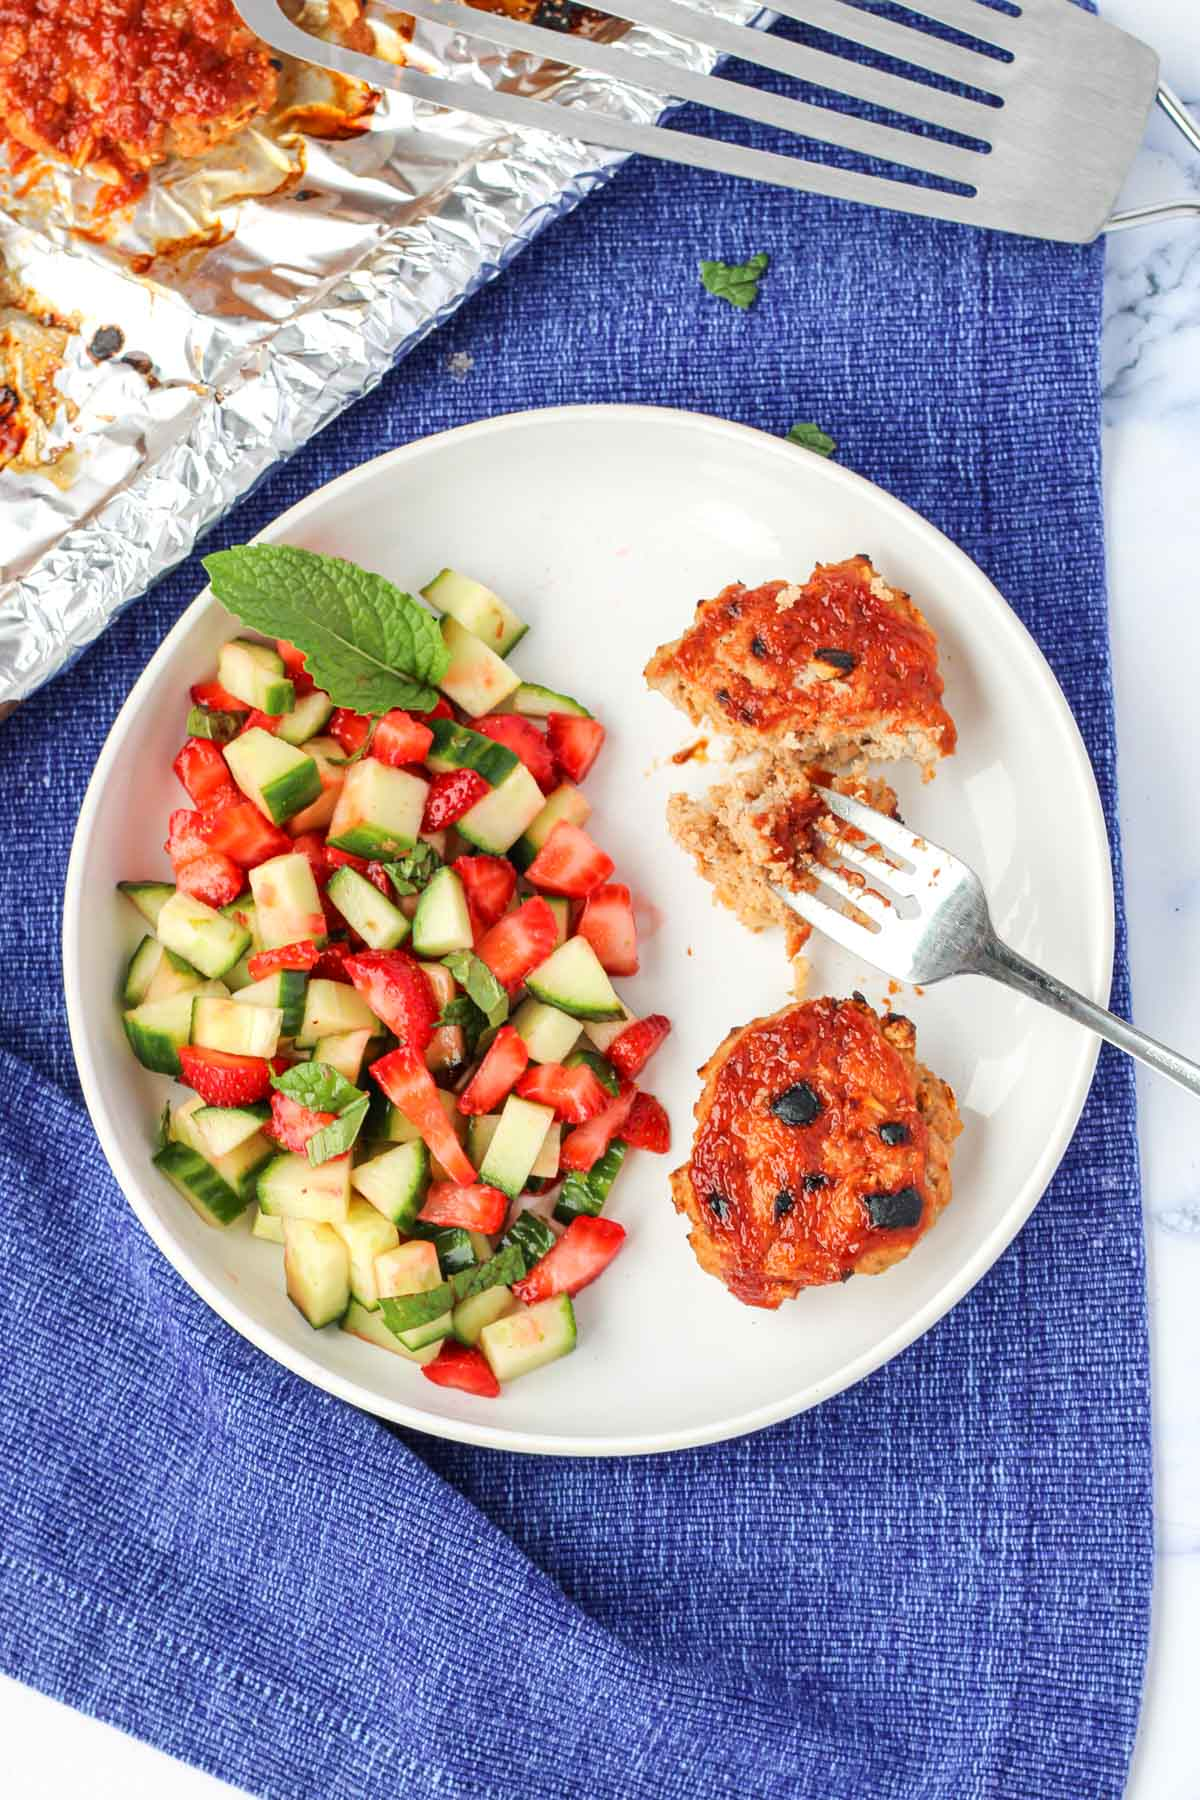 Gluten-Free Turkey Burgers on a white plate with strawberry cucumber salad